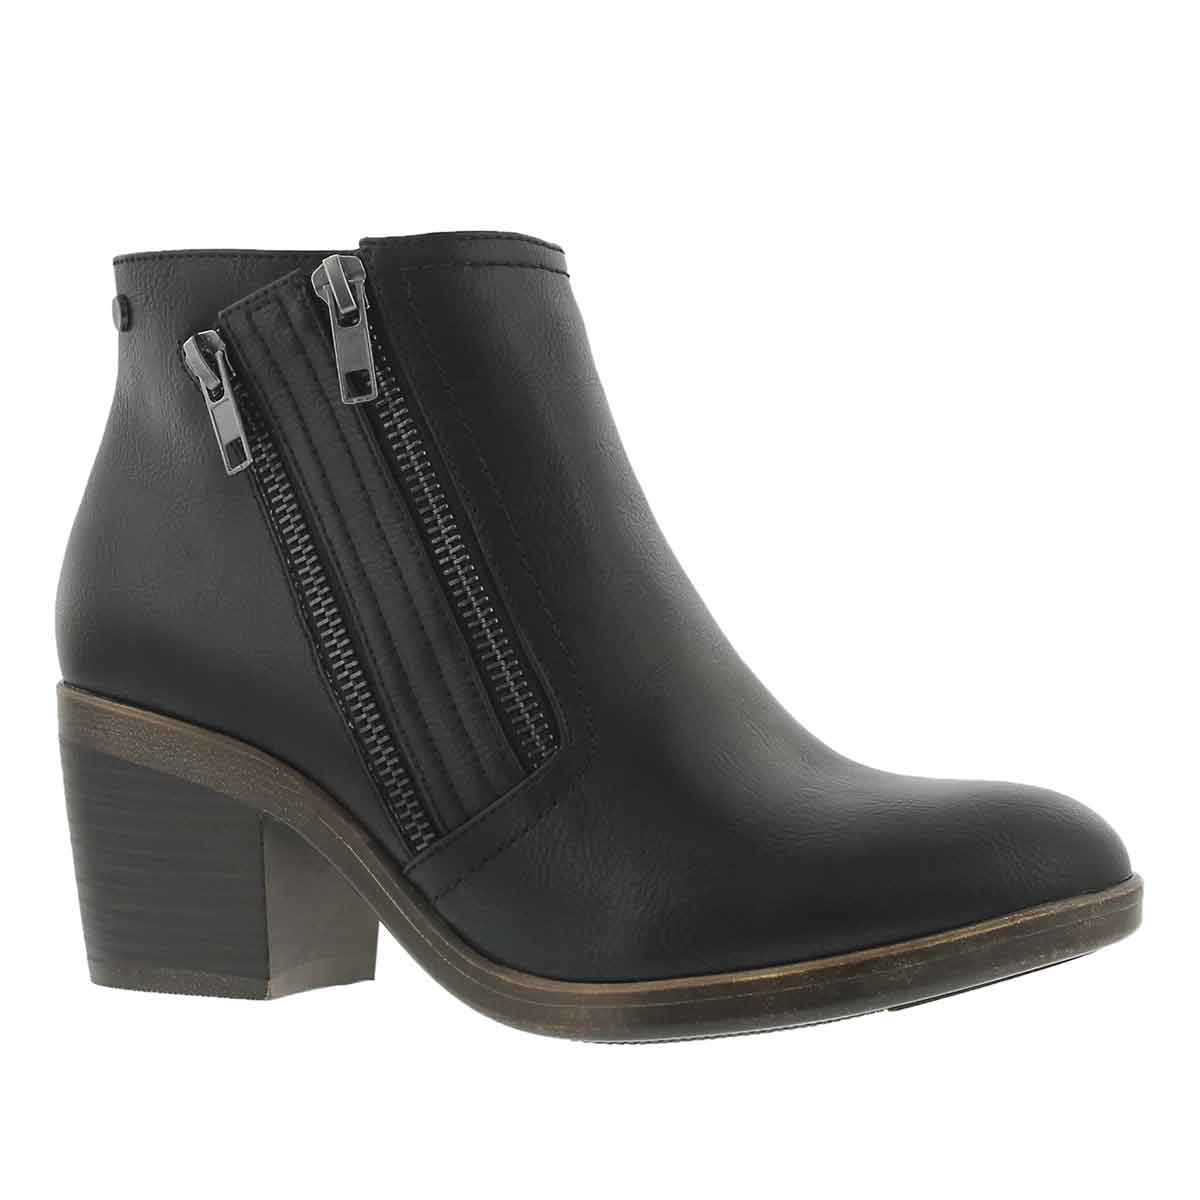 Women's TIFFANY black casual ankle boots